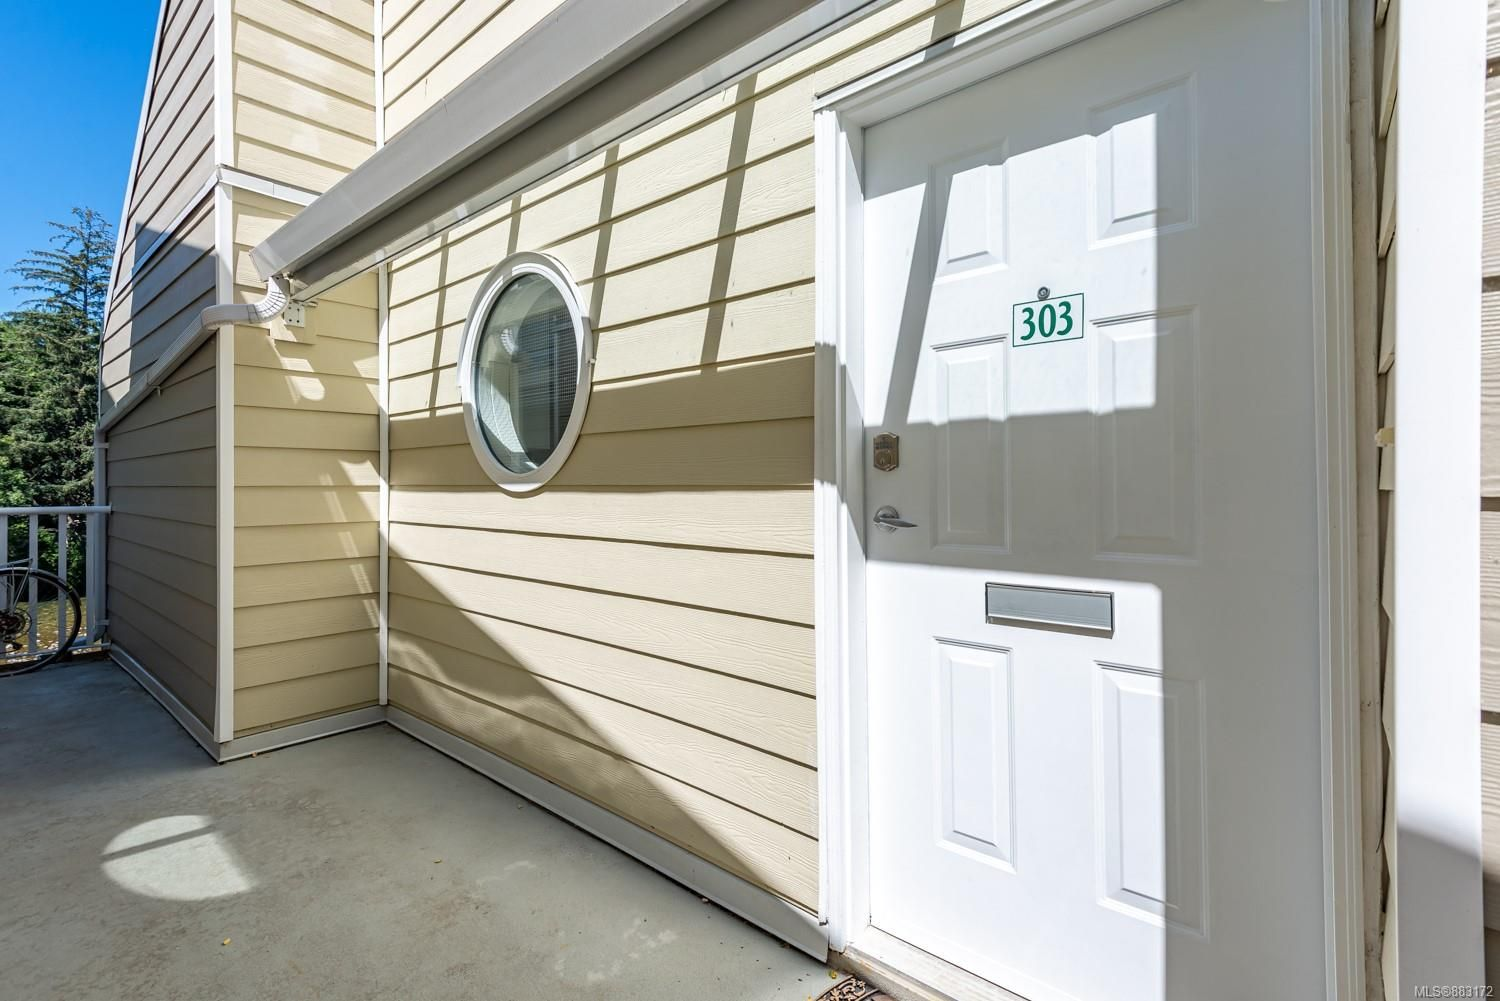 Photo 23: Photos: 303 205 1st St in : CV Courtenay City Row/Townhouse for sale (Comox Valley)  : MLS®# 883172